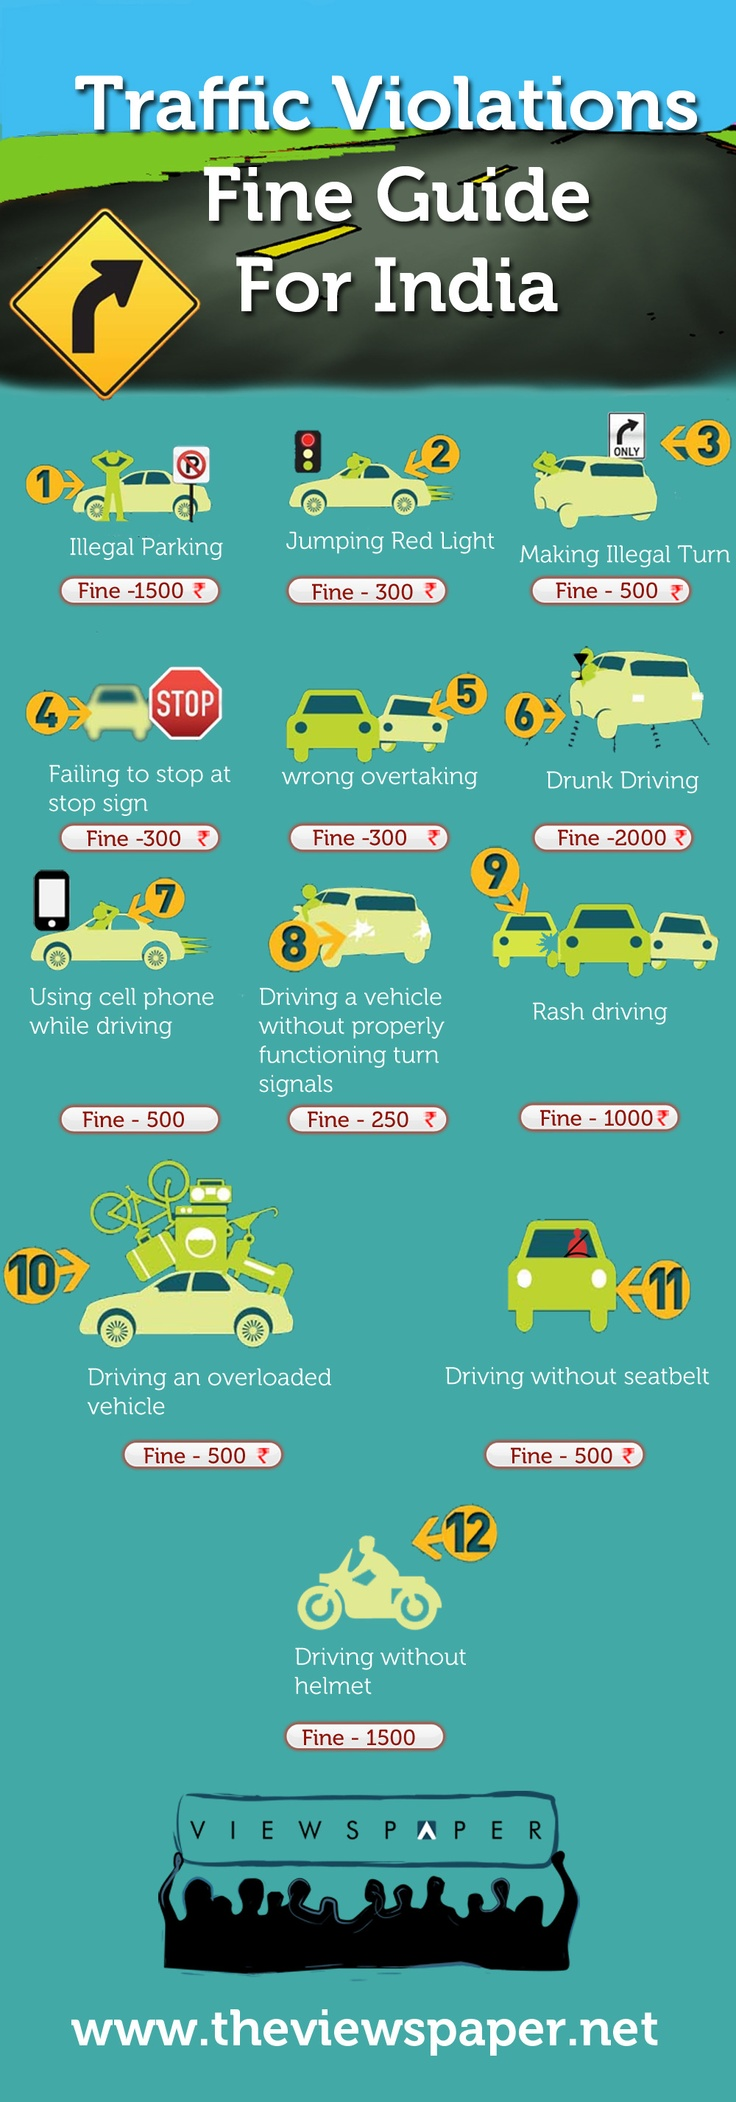 Traffic violation fine guide in India